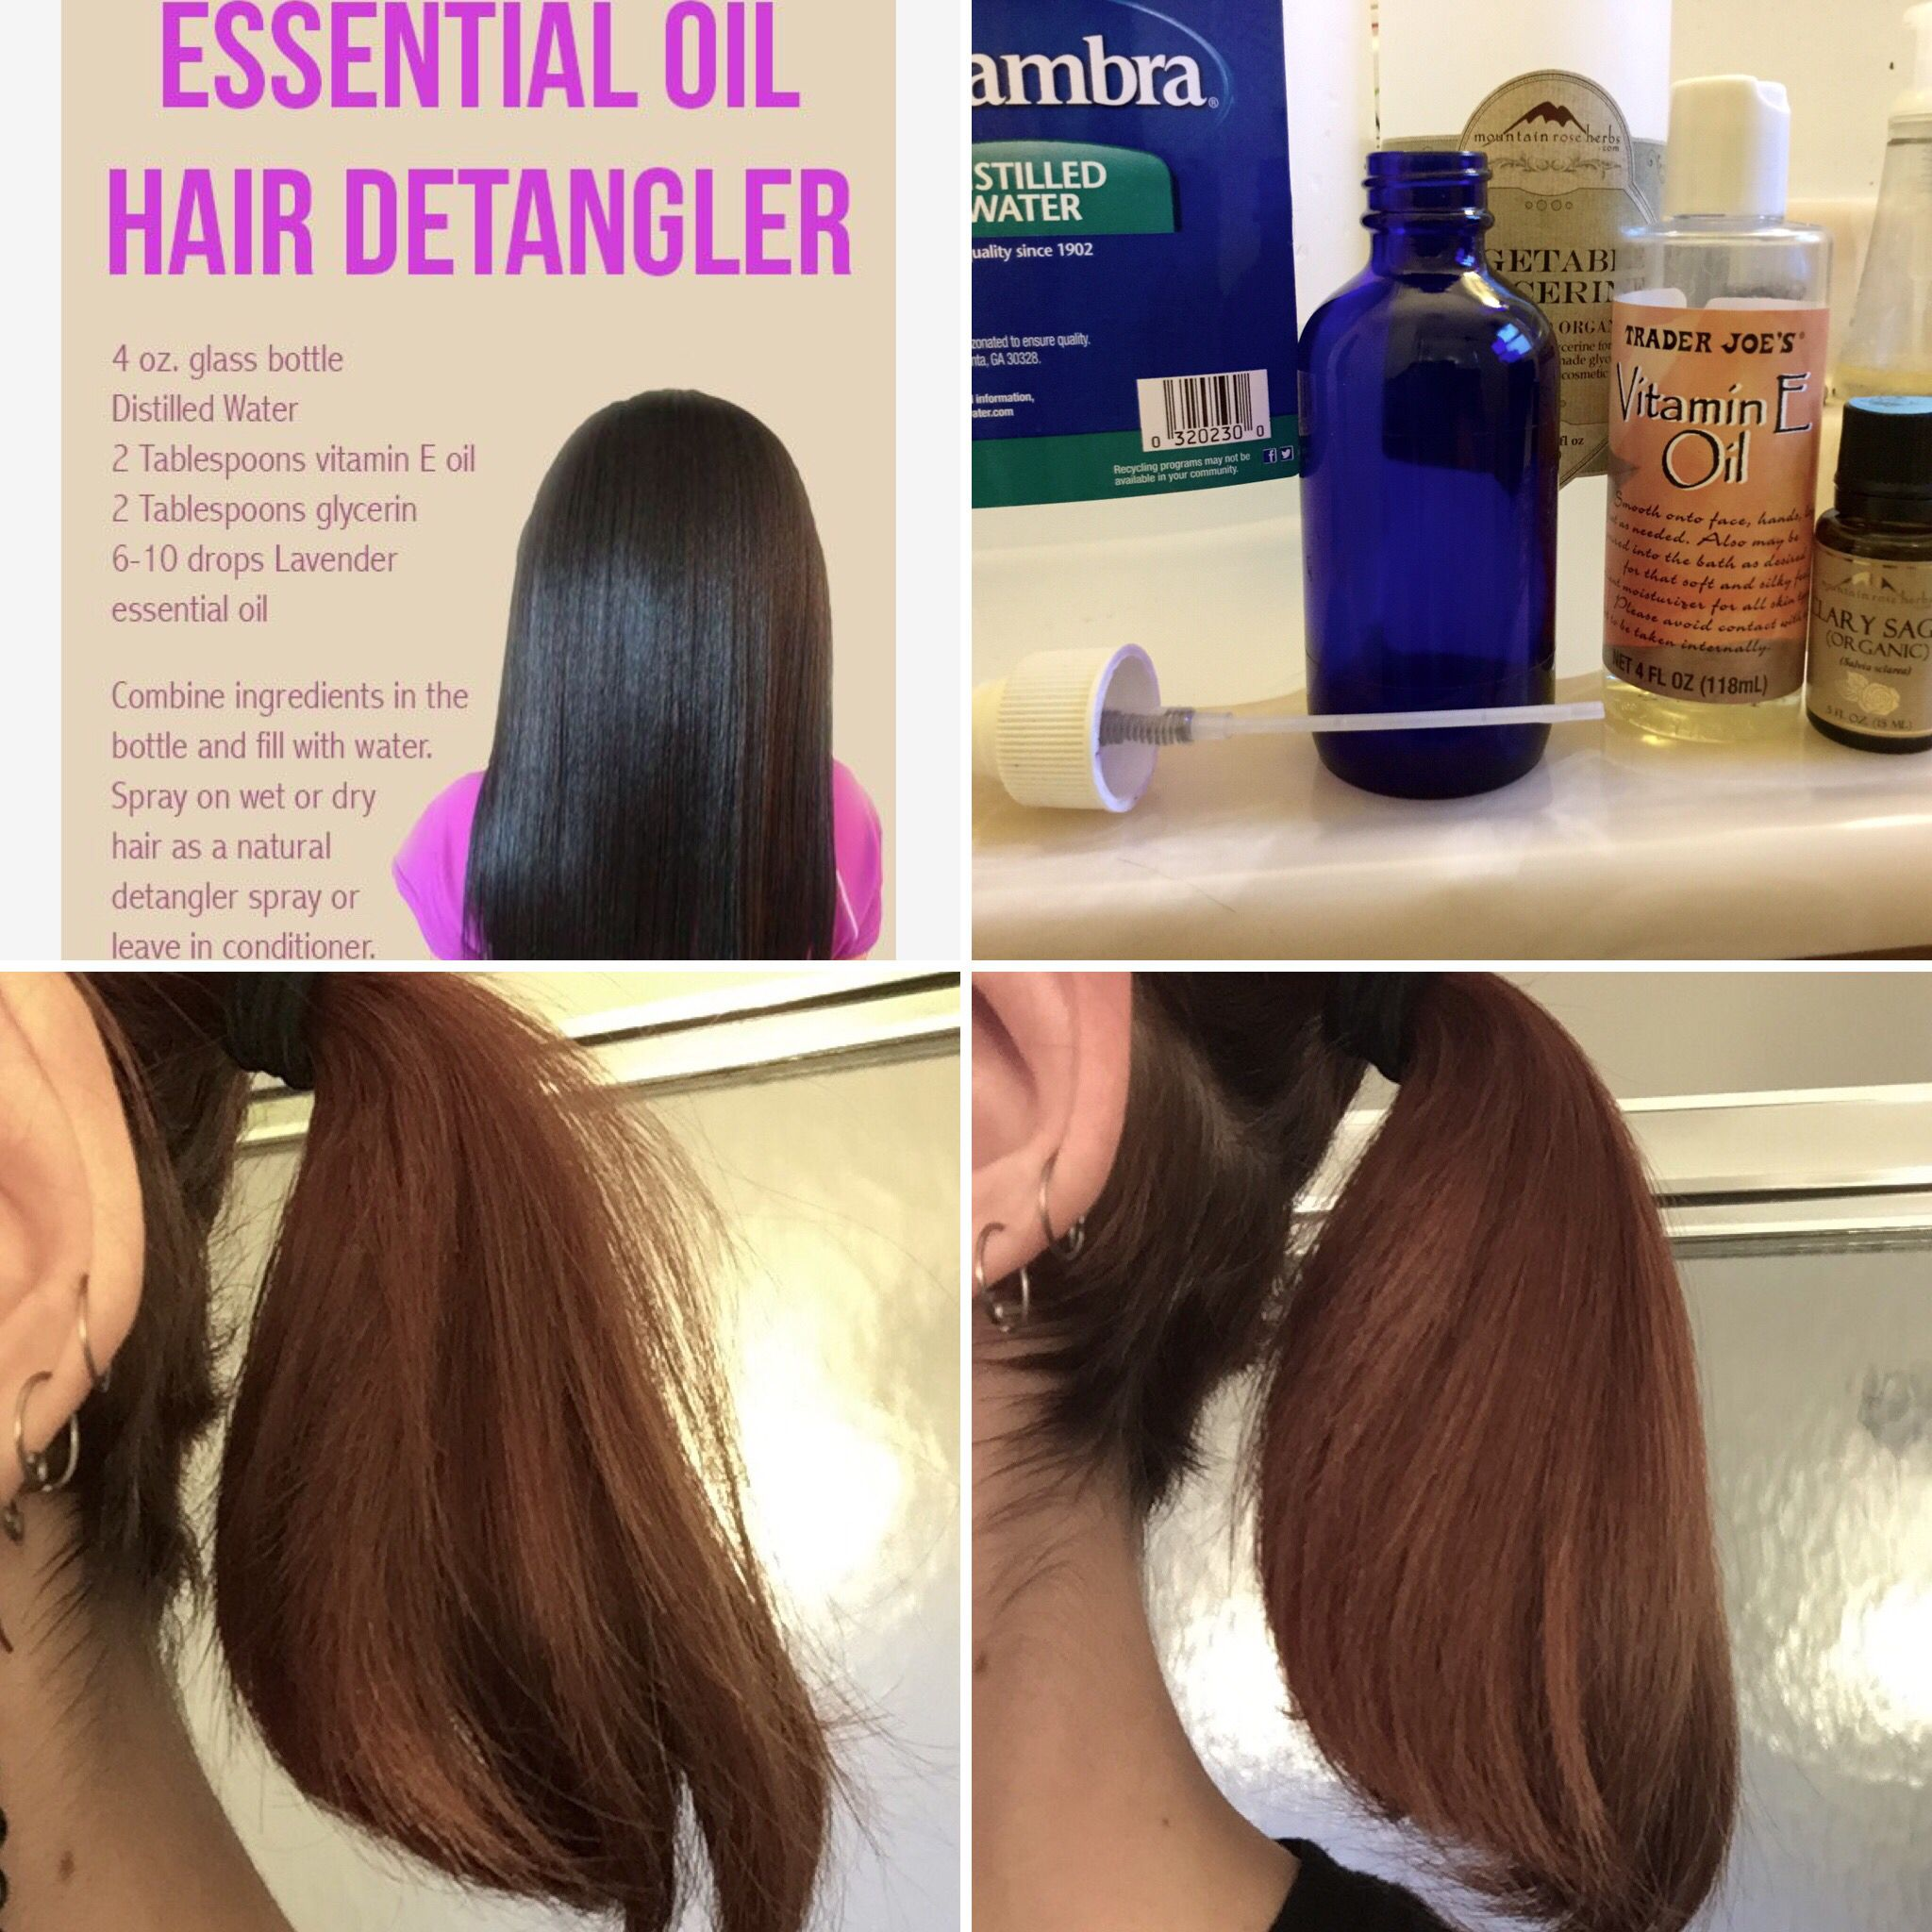 I Try Beauty Diy Hair Detangler Leave In Conditioner With Vitamin E And Glycerin Hair Detangler Diy Hair Detangler Coconut Oil Hair Treatment